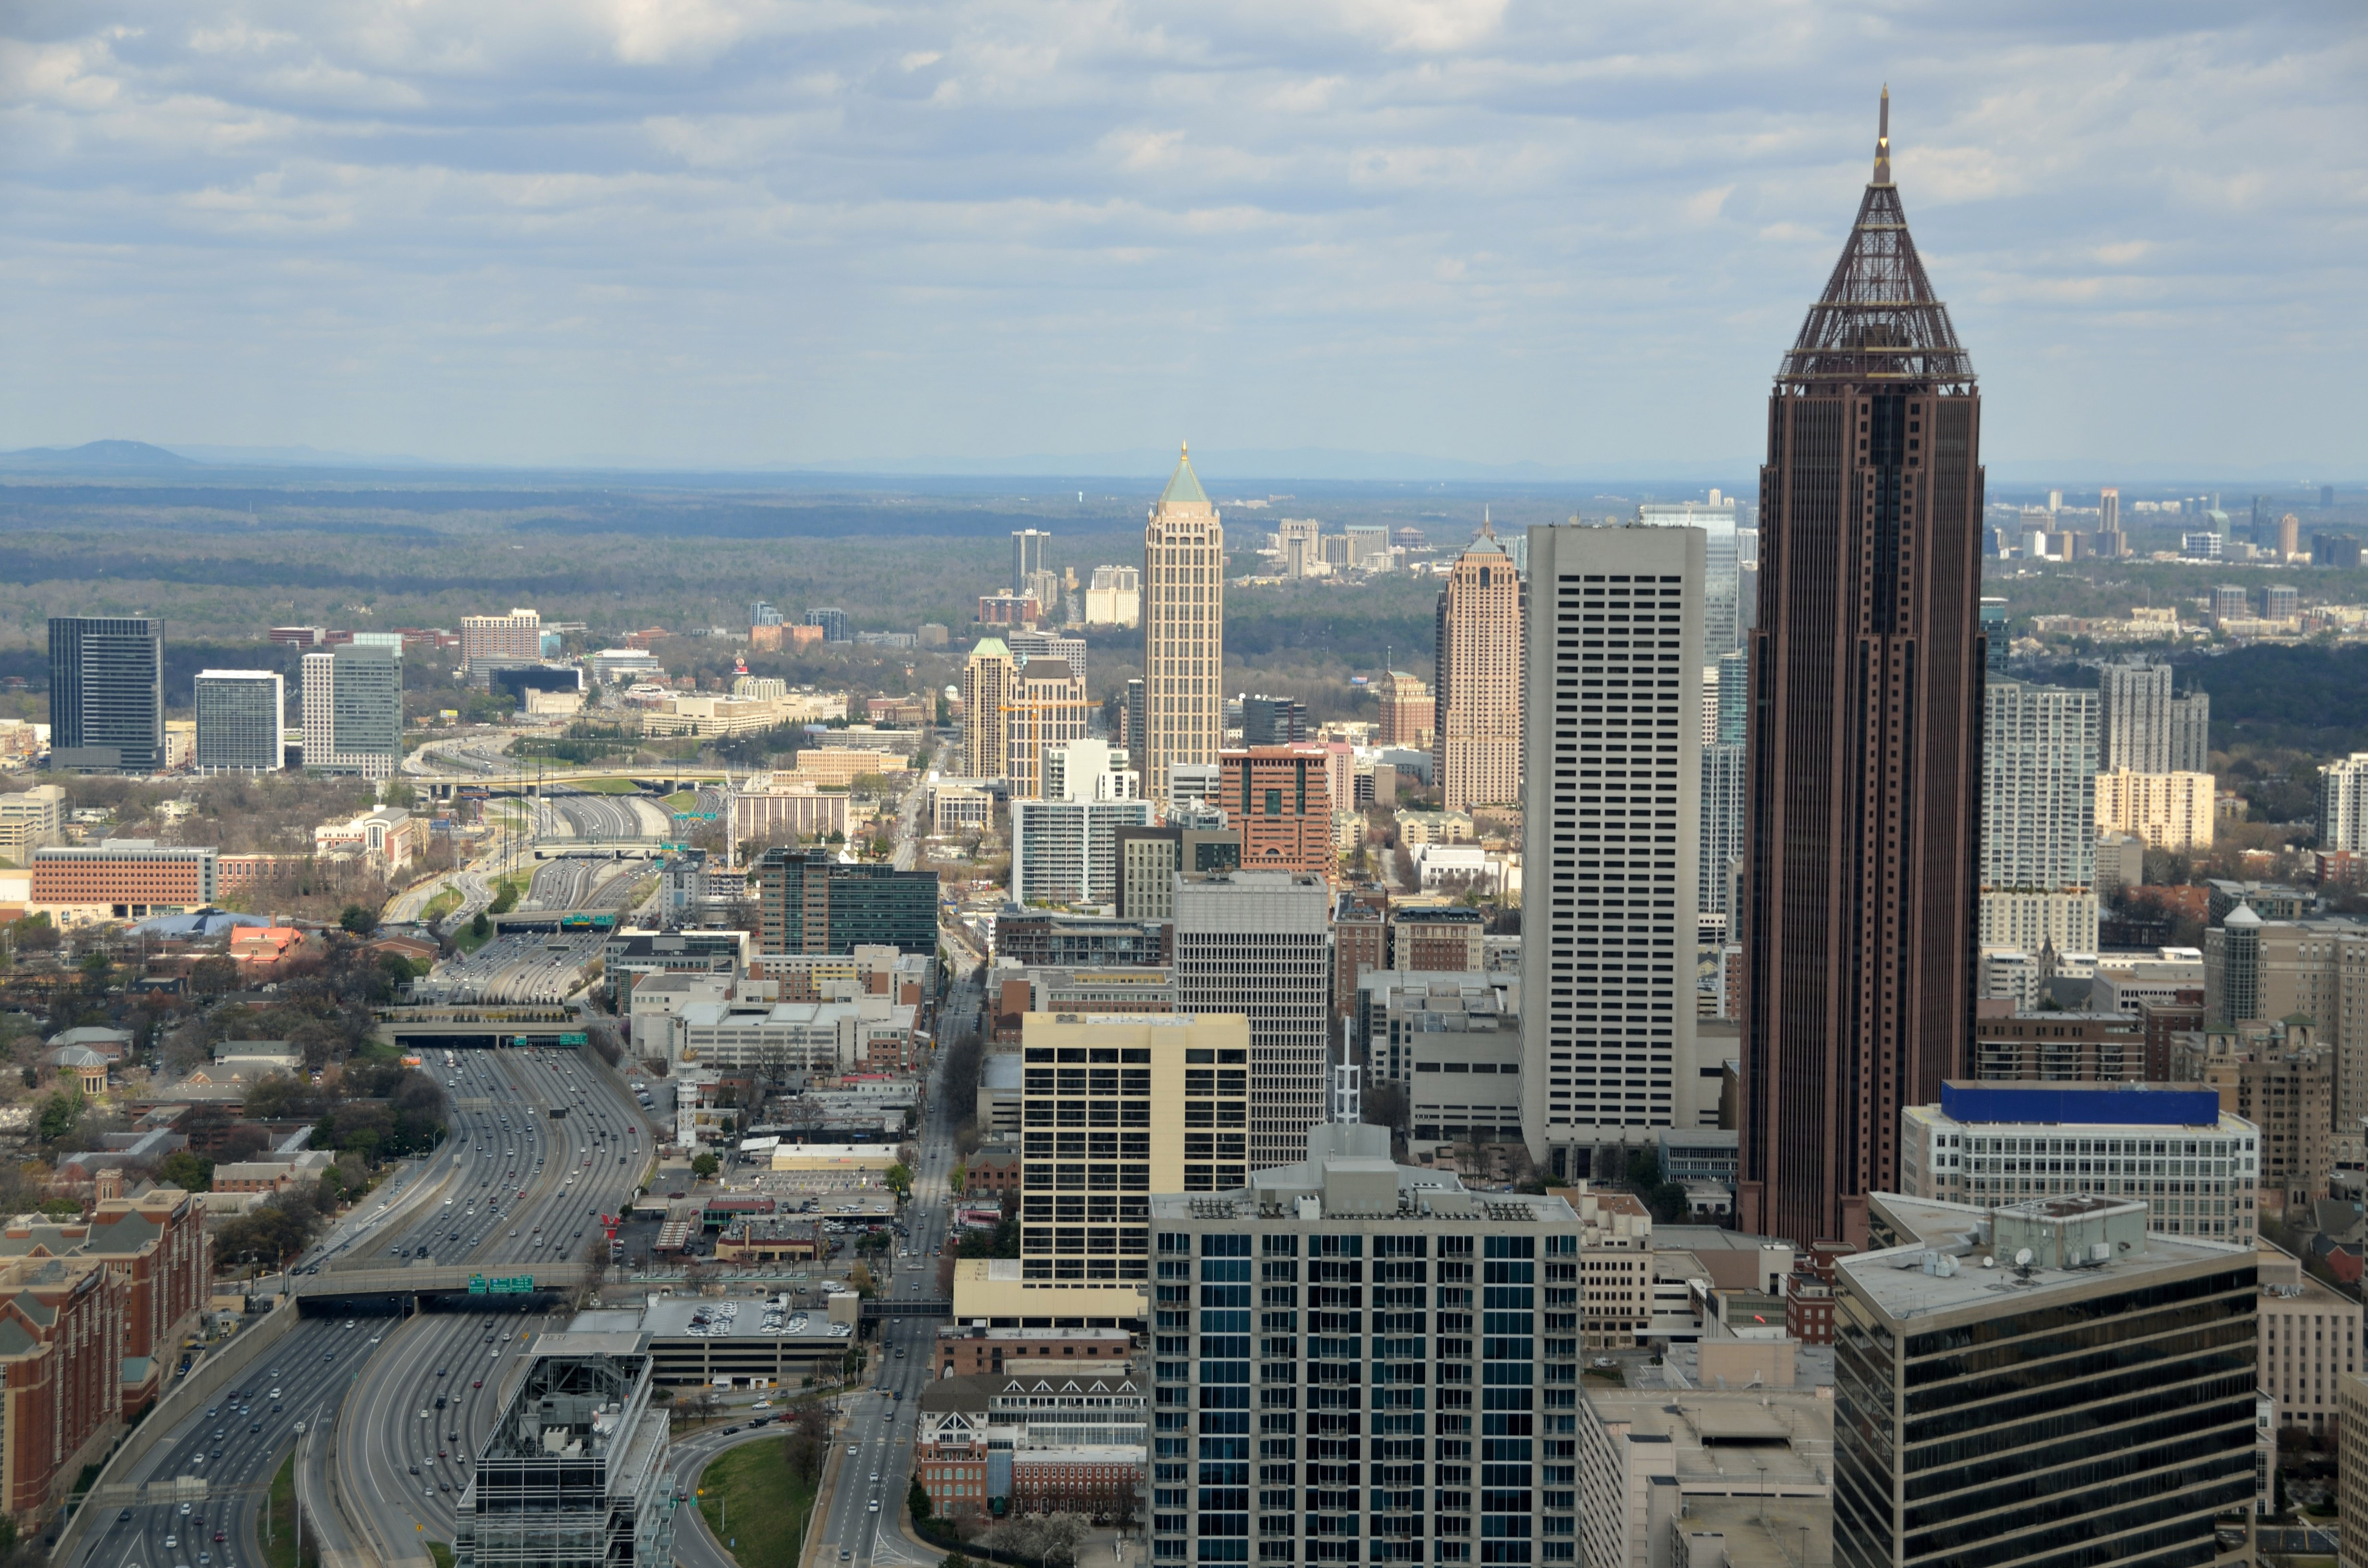 cityscape view of atlanta georgia with roads skyscrapers and